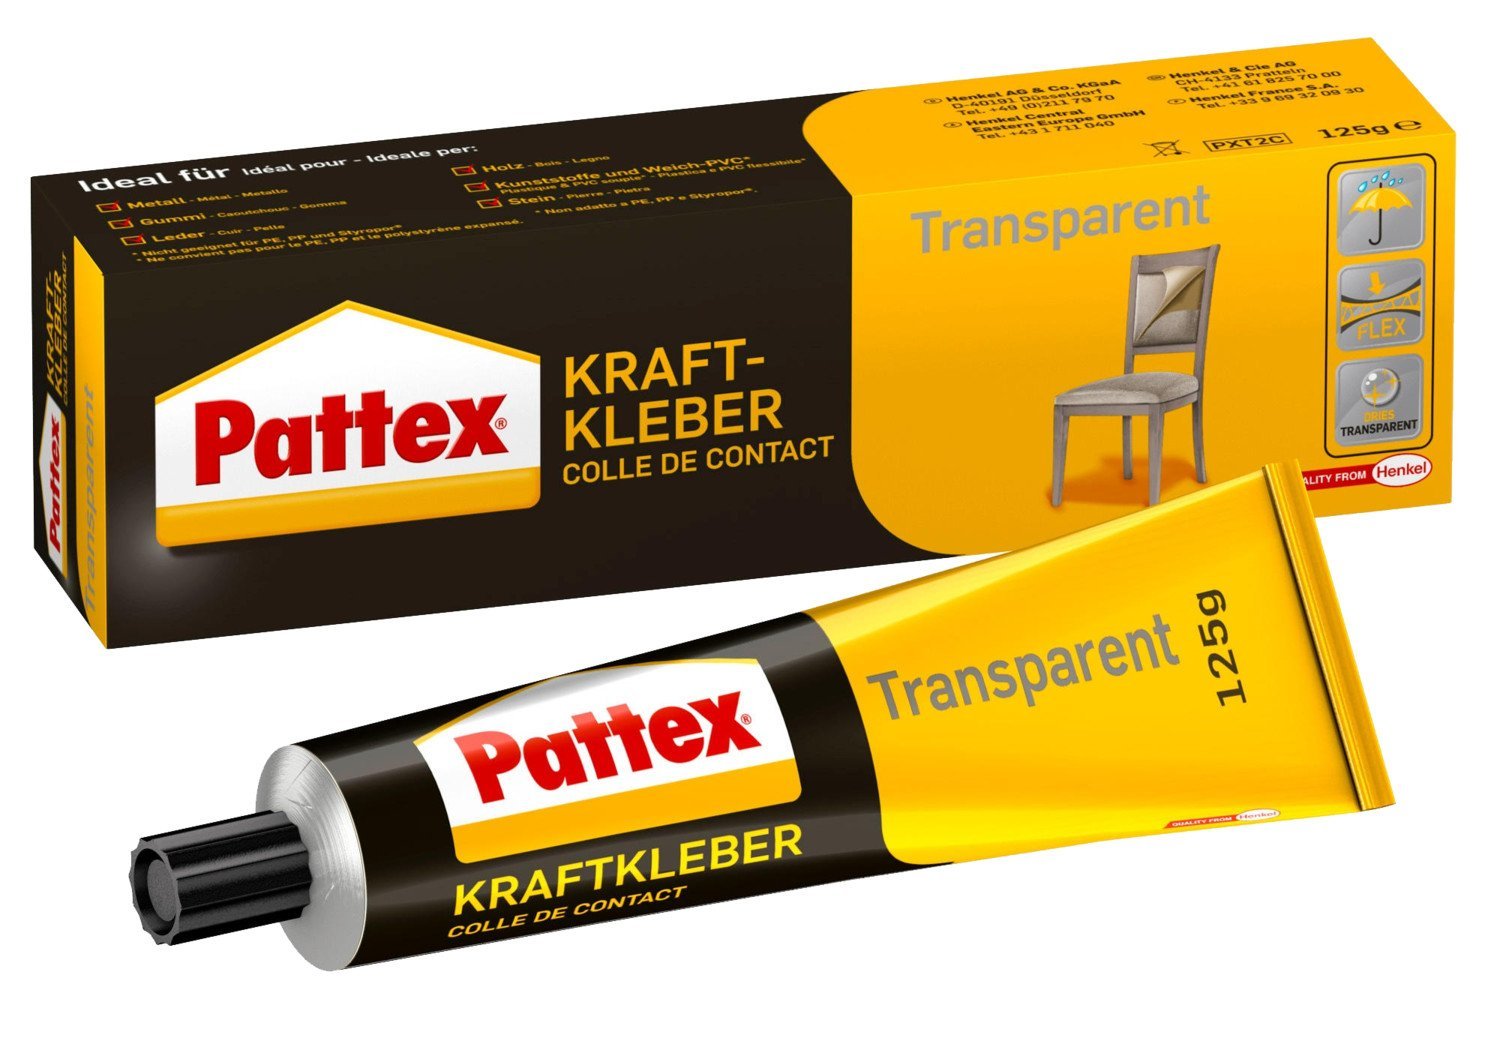 kraftkleber pattex transparent 125 g lagerhaus salzburg. Black Bedroom Furniture Sets. Home Design Ideas